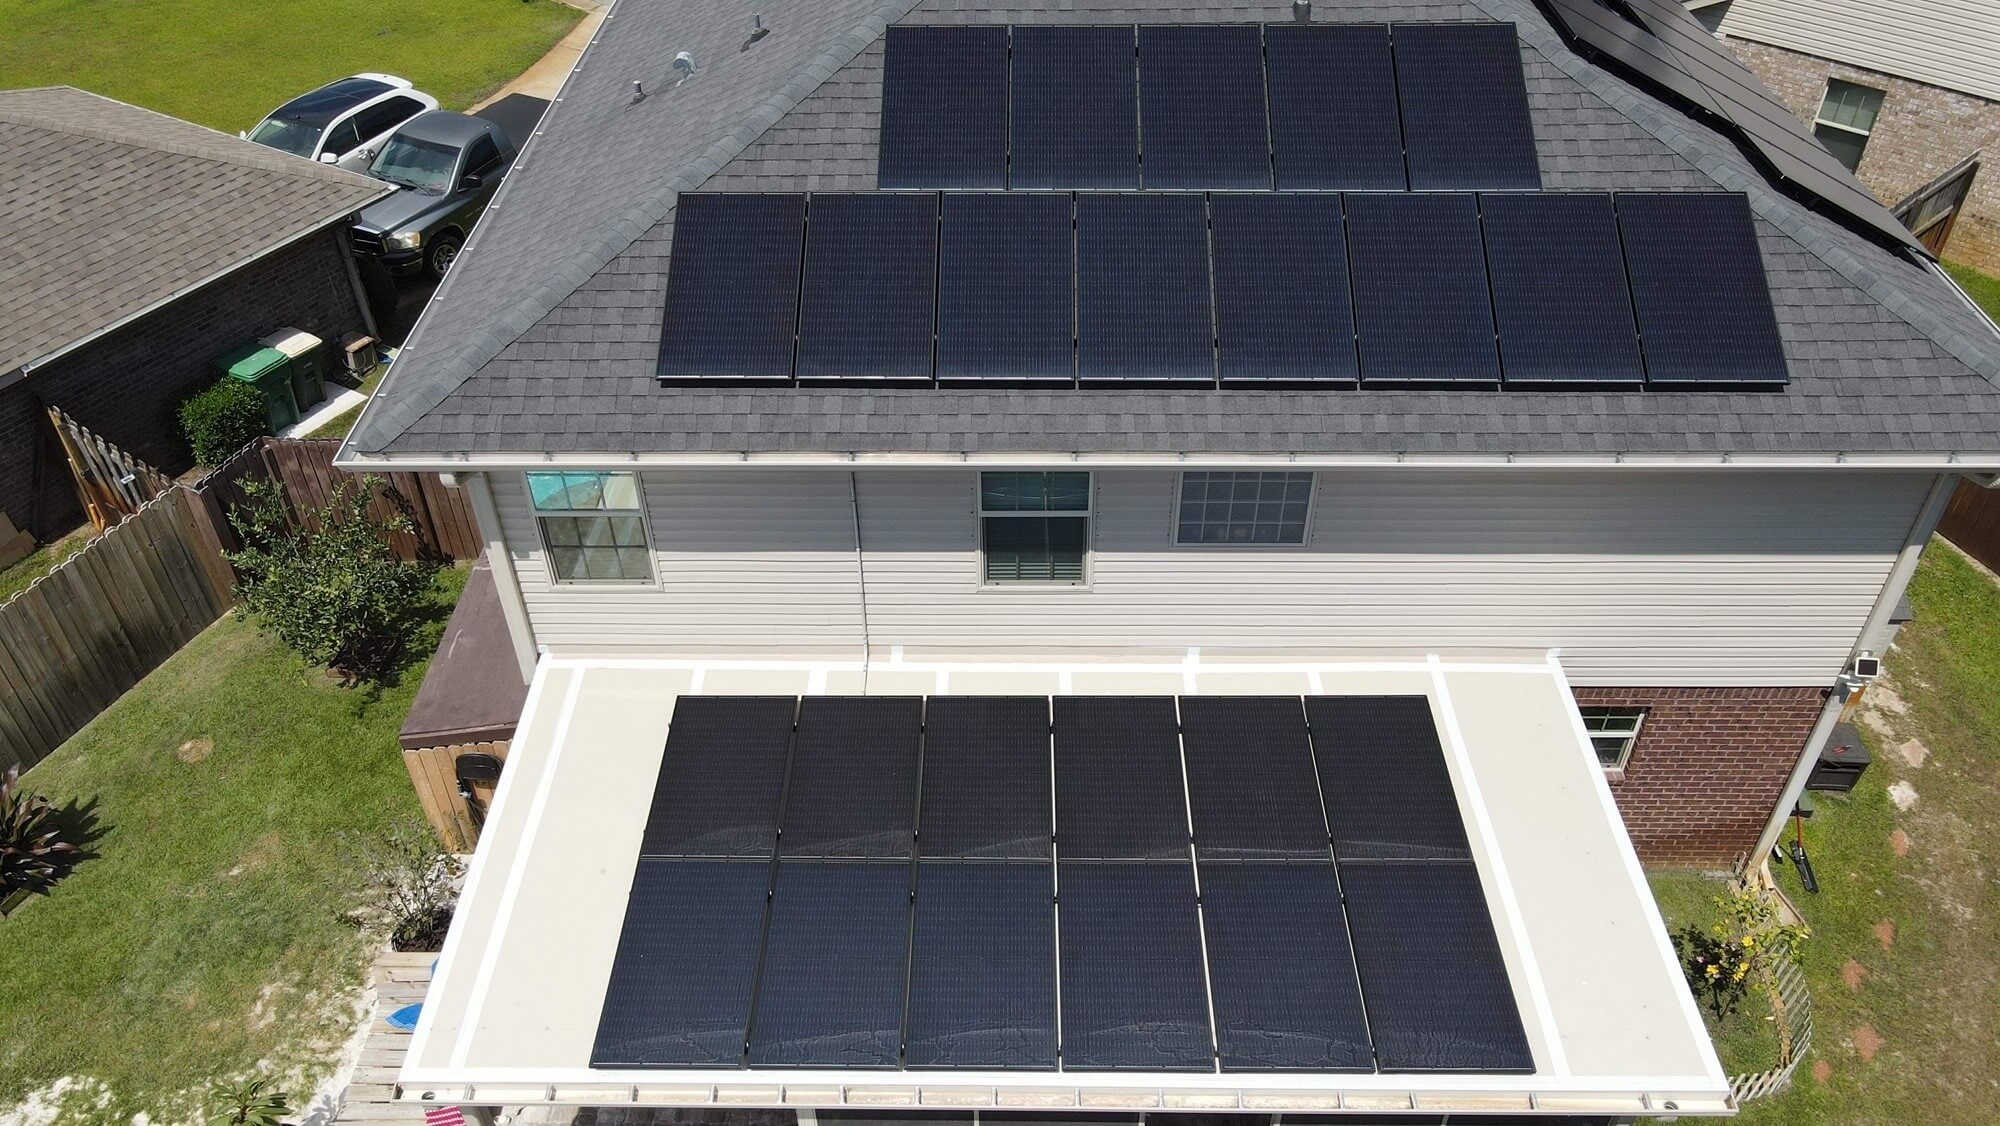 The Hughes Family's solar array looks mighty fine from above in this residential case study of their experience switching to solar